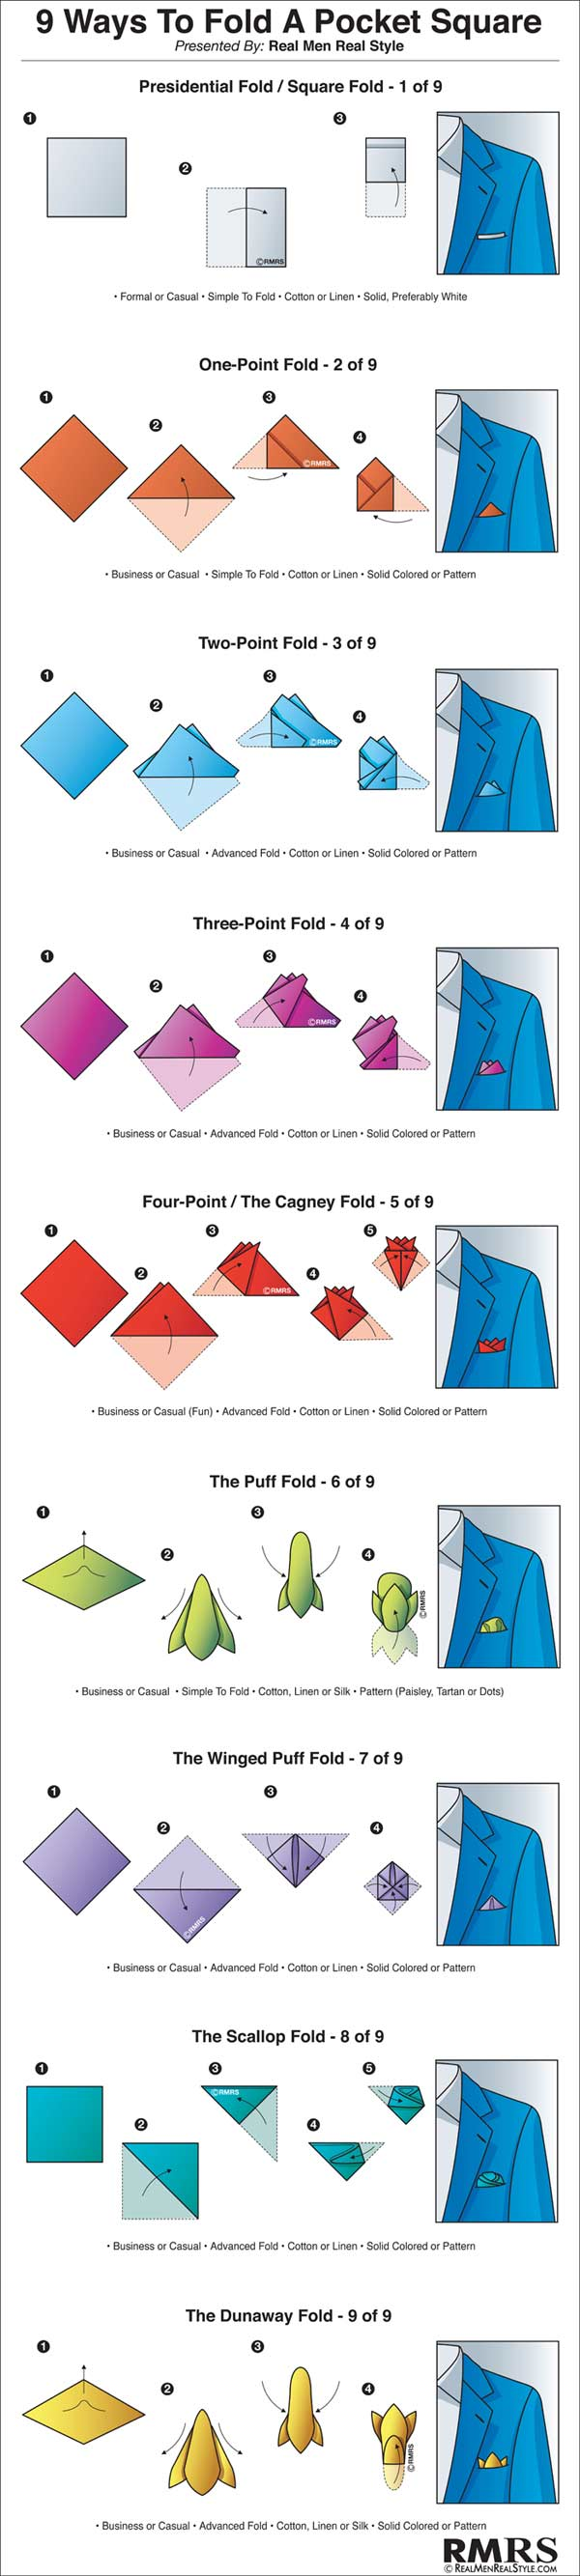 9-Ways-To-Fold-A-Pocket-Square-Infographic-600